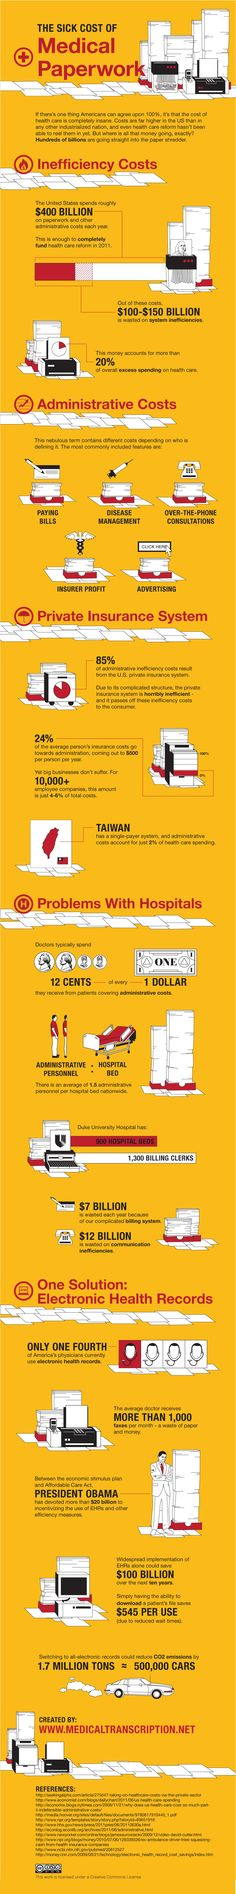 #healthcare The Sick Cost of Medical Paperwork  (Infographic)